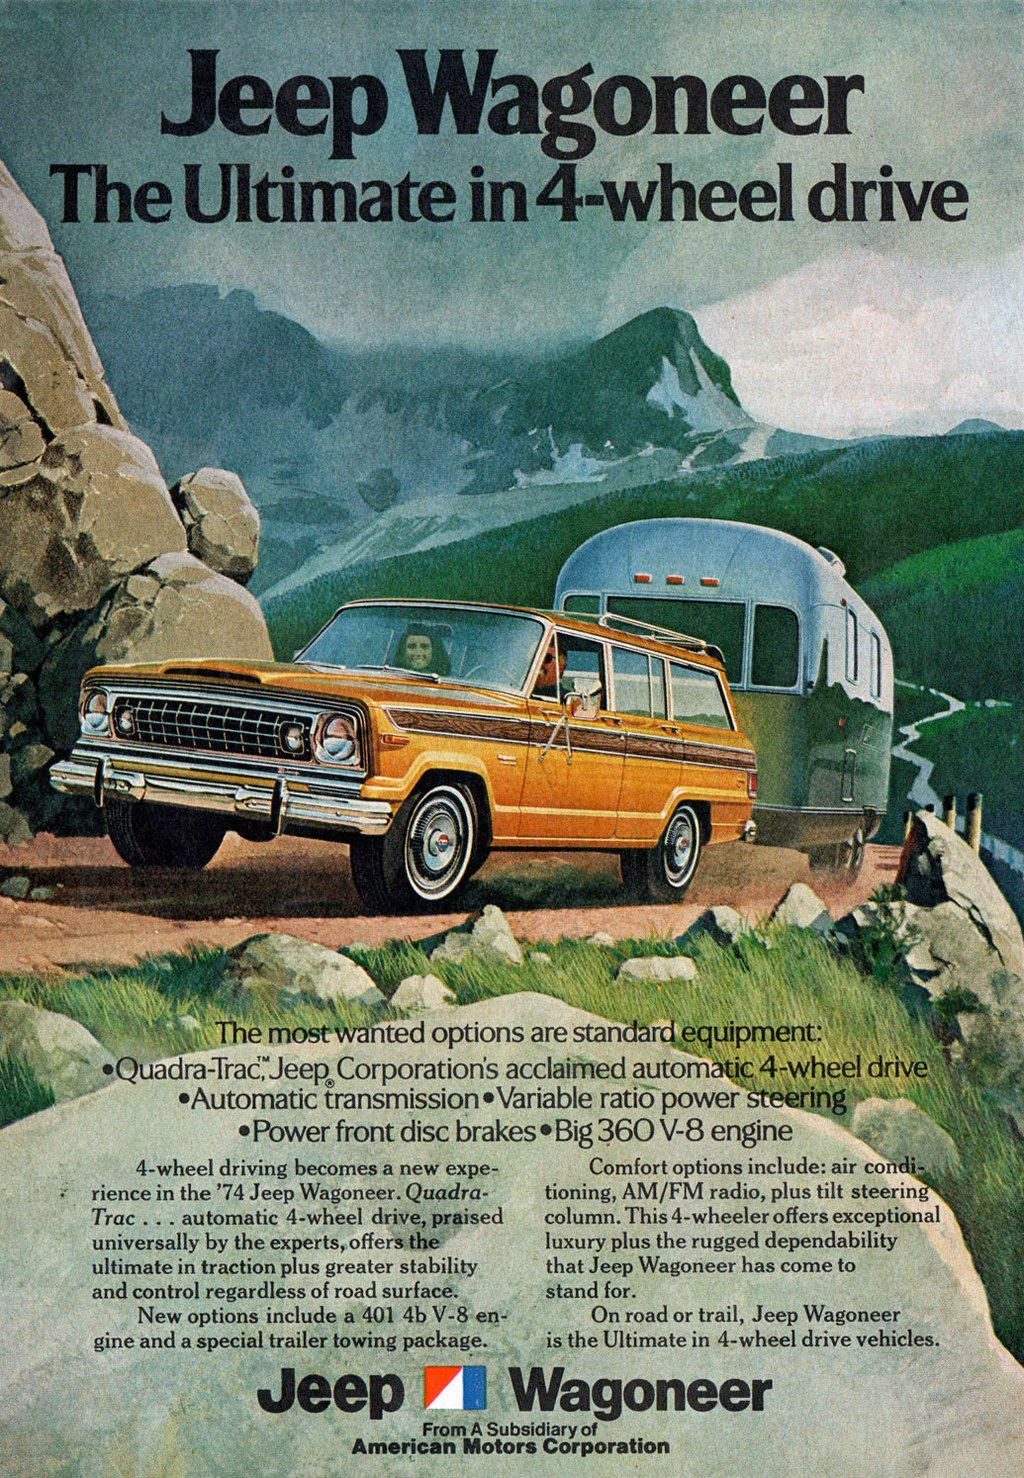 Jeep Wagoneer The Ultimate in 4-wheel drive   , , t iliNak7,11,10.* , r `,,,,;,, *  The most Wanted options are standard equipment: ,  •Quadra-Trad,uJeeRCorporation's acclaimed automatic 4-wheel drive •Automatic transmission •Variable ratio power-gteering • Power front disc brakes • Big 360 V-8 engine    4-wheel driving becomes a new expe-rience in the '74 Jeep Wagoneer. Quadra-Trac . . . automatic 4-wheel drive, praised universally by the experts, offers the ultimate in traction plus greater stability and control regardless of road surface. New options include a 401 4b V-8 en-gine and a special trailer towing package.   Comfort options include: air condi-tioning, AM/FM radio, plus tilt steerin column. This 4-wheeler offers exceptional luxury plus the rugged dependability that Jeep Wagoneer has come to stand for. On road or trail, Jeep Wagoneer is the Ultimate in 4-wheel drive vehicles.  Jeep I Wagoneer  From A Subsidiary of American Motors Corporation